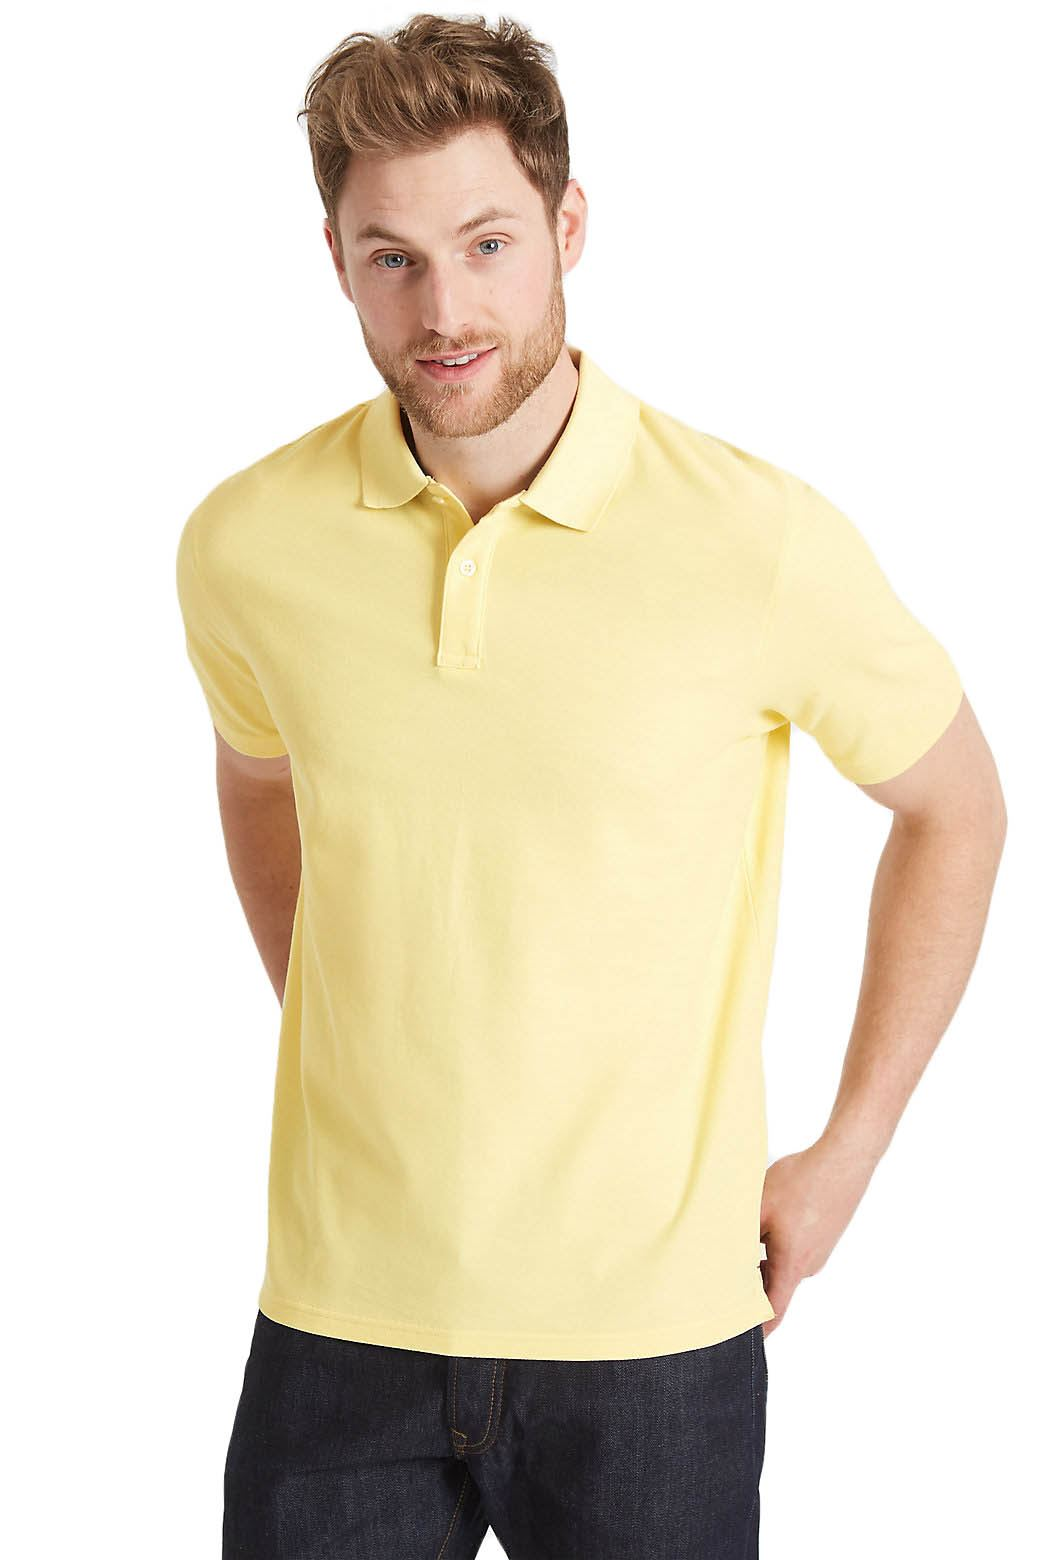 Marks-amp-Spencer-Mens-Cotton-Pique-Polo-Shirt-Extra-Large-Sizes thumbnail 26